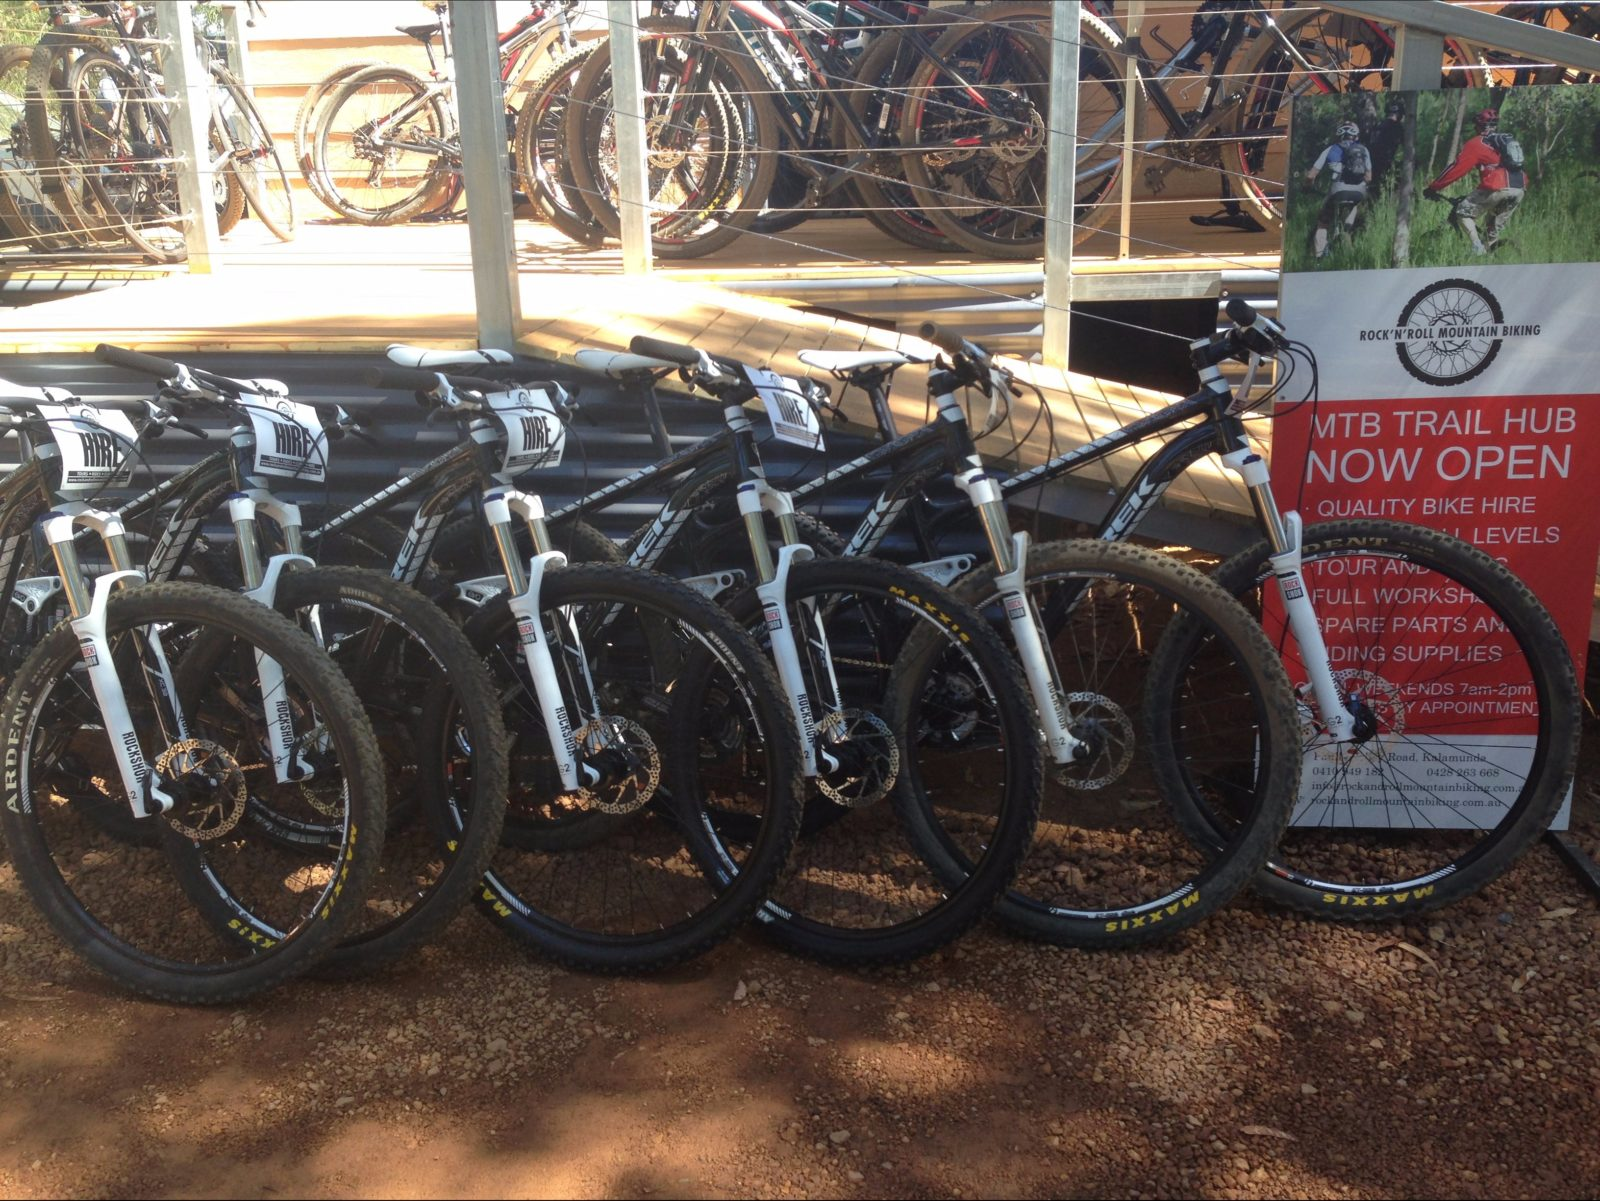 Rock and Roll Mountain Biking Tours, Pauls Valley, Western Australia